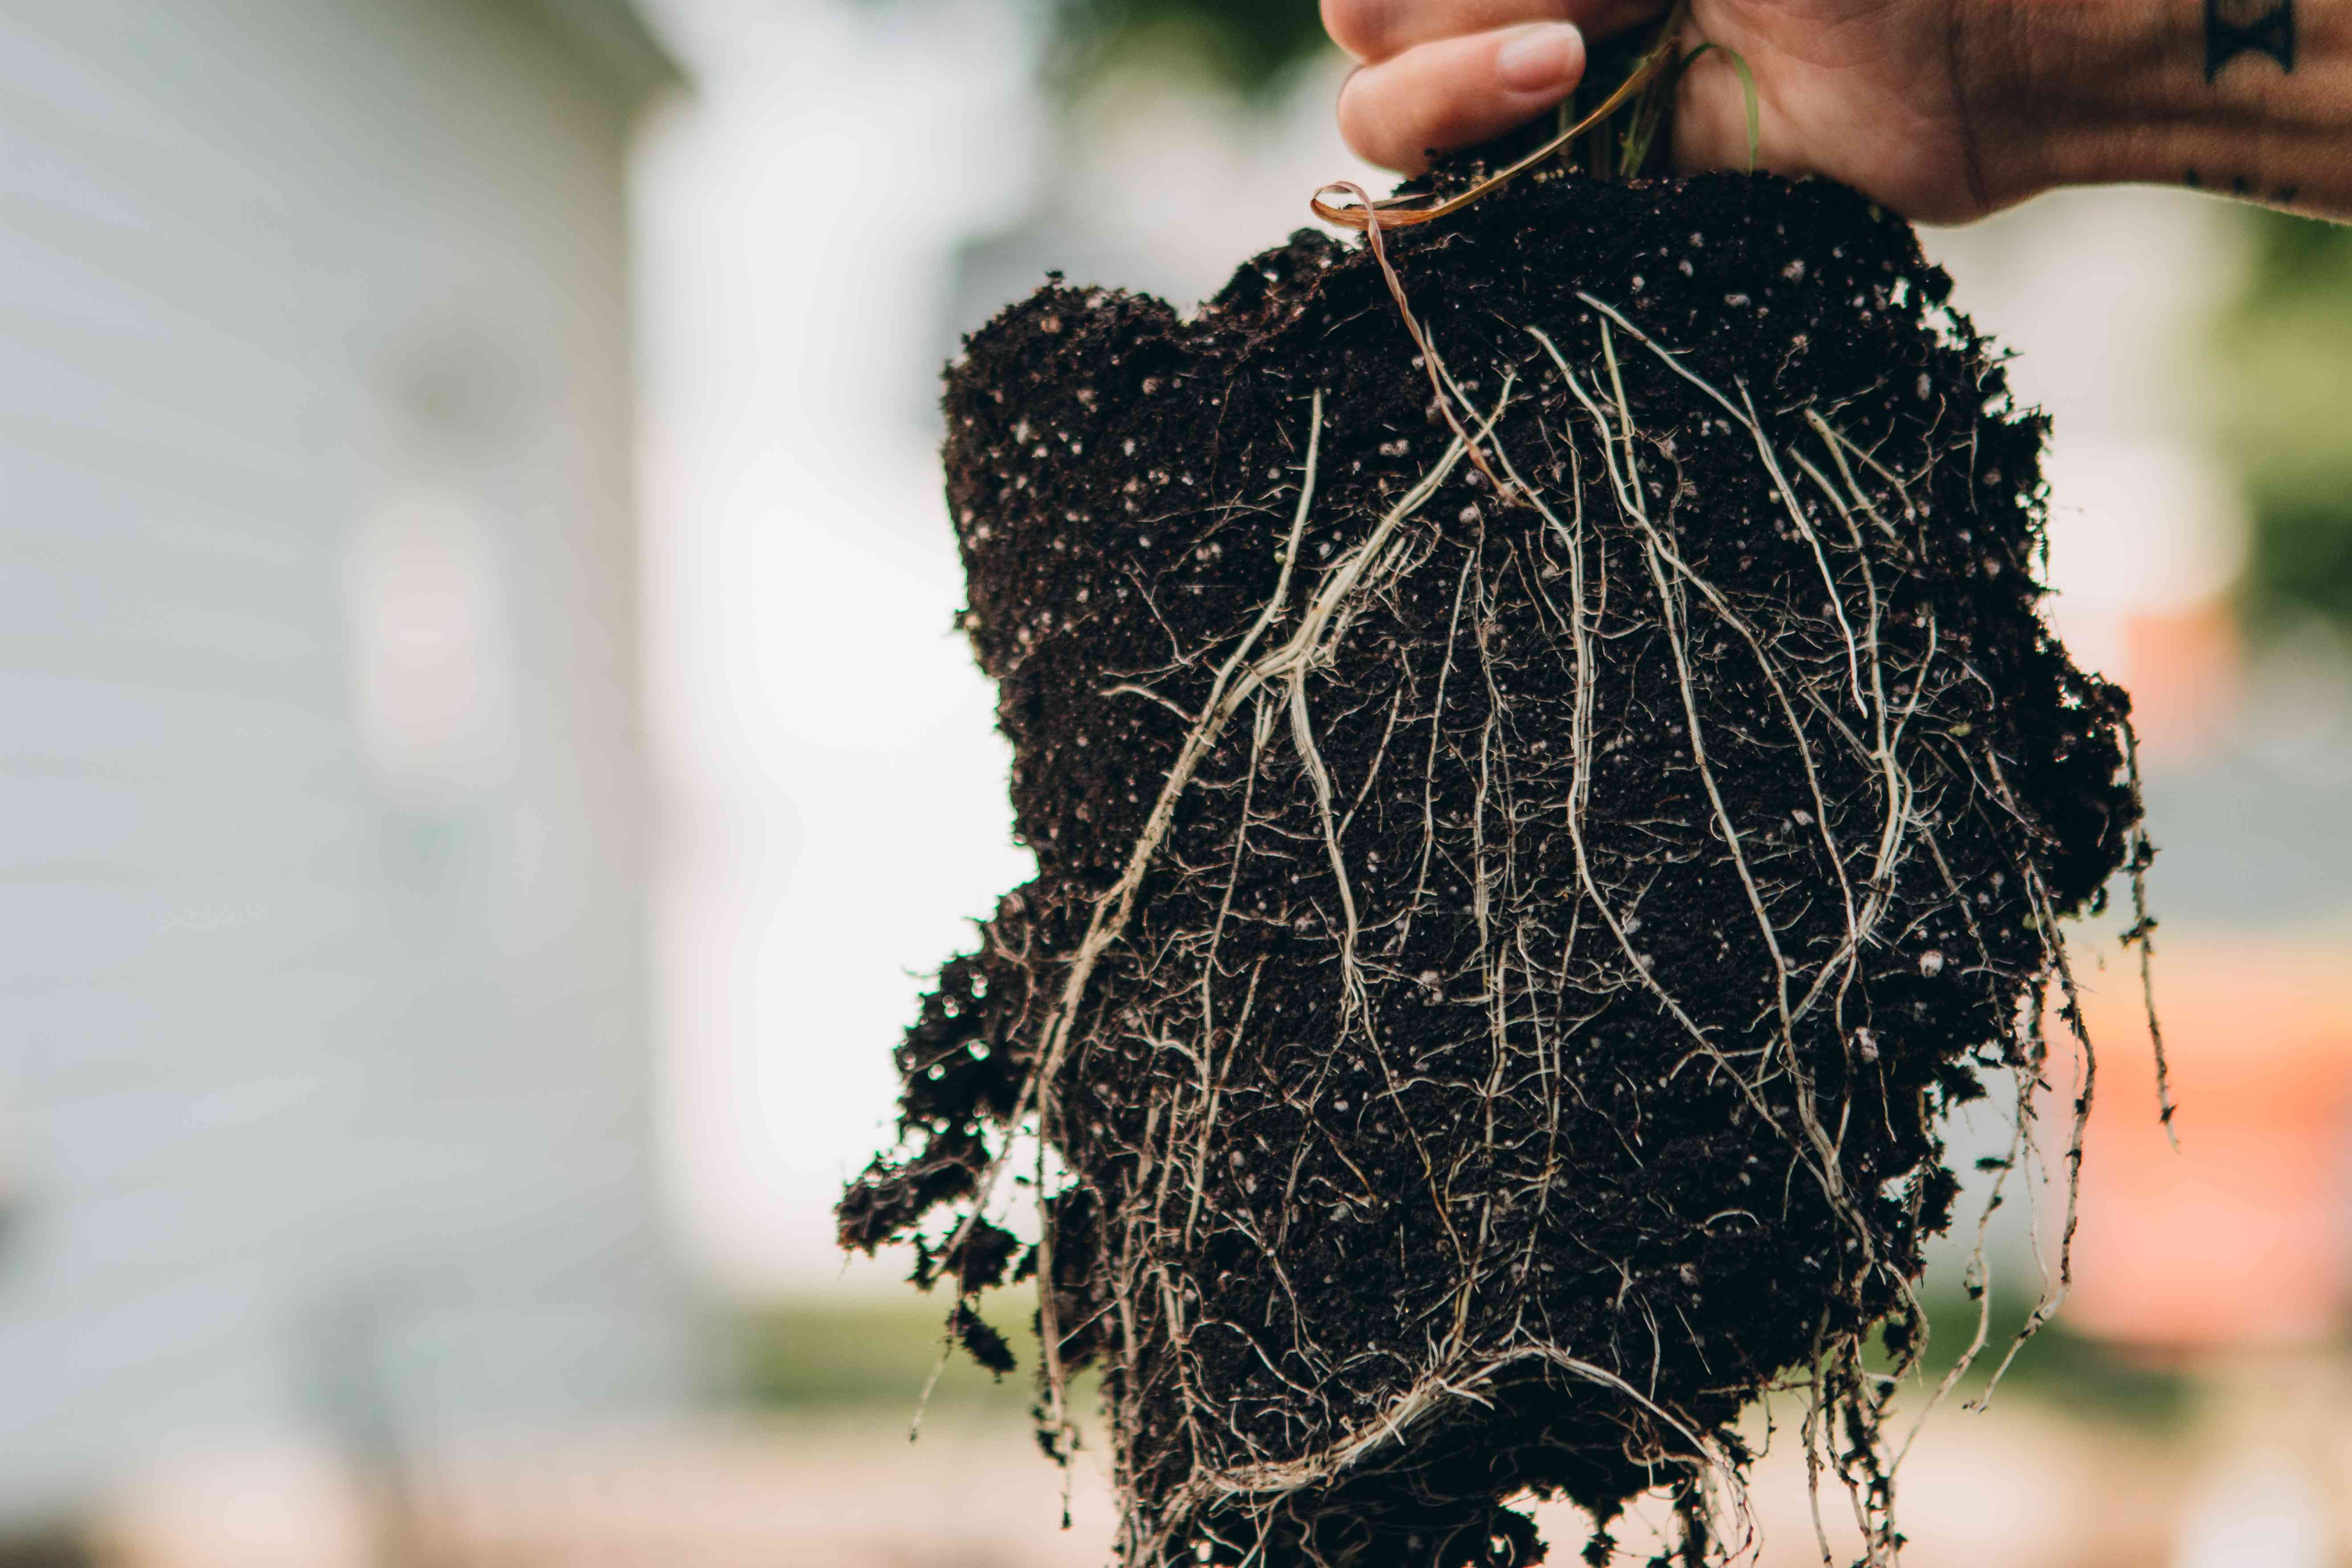 hands hold a cutting of lemongrass with exposed roots and black soil hanging in air